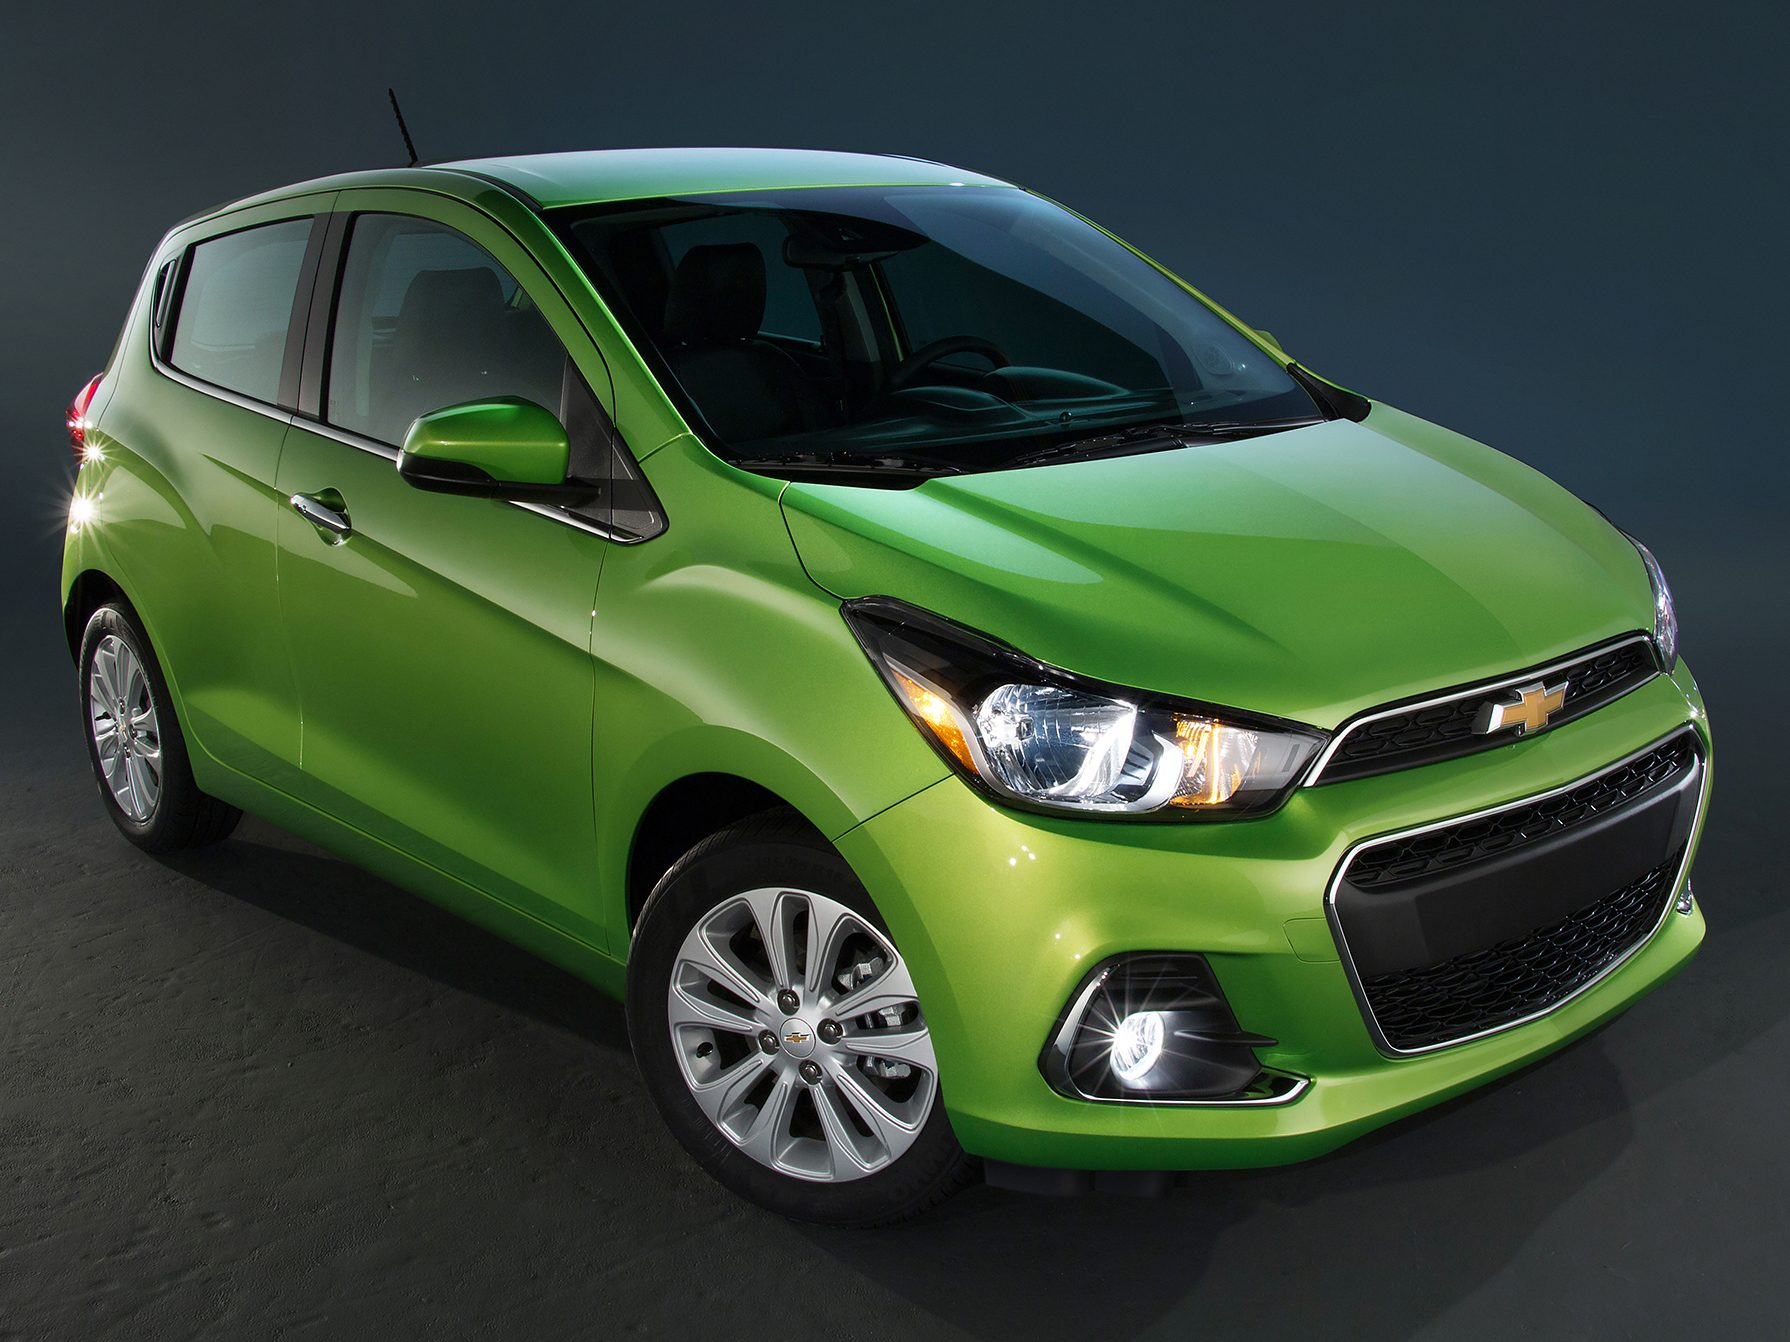 Introducing the New 2016 Chevrolet Spark